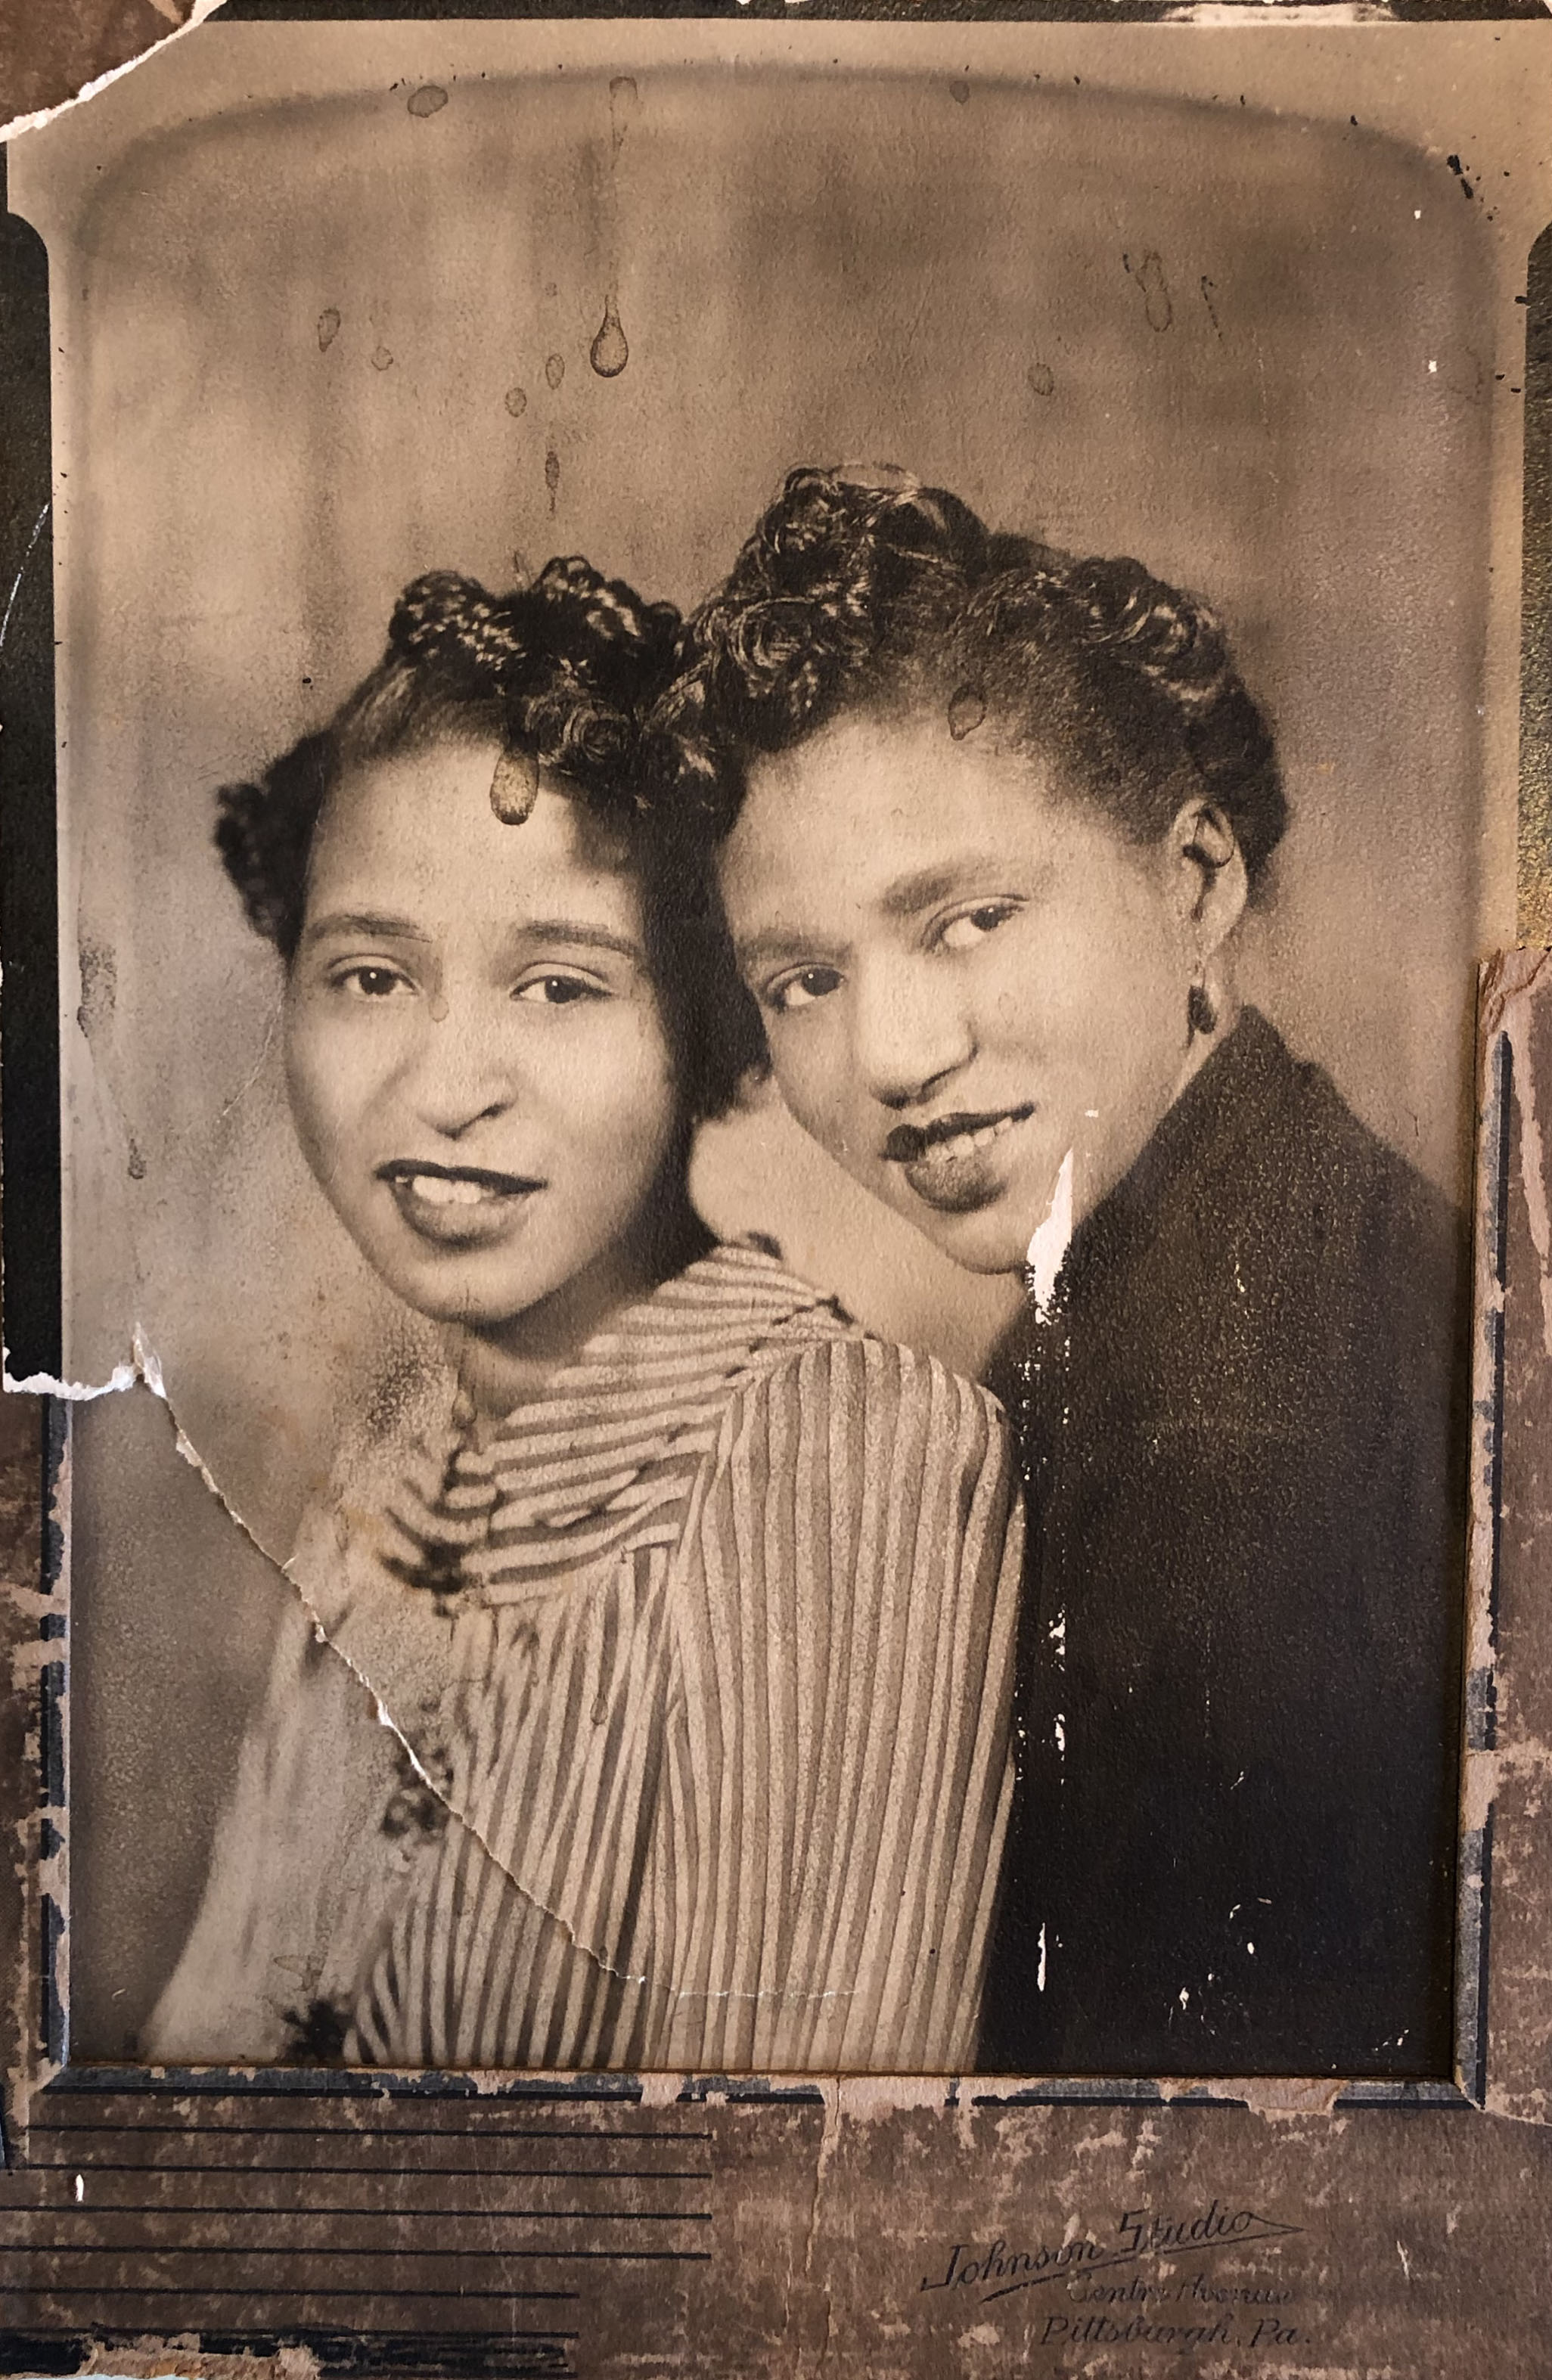 Welzetta Hardeman's mother (pictured, right) and aunt posed for a portrait at Johnson Studio on Centre Avenue, c. 1940-1945. Courtesy of Carol Hardeman.